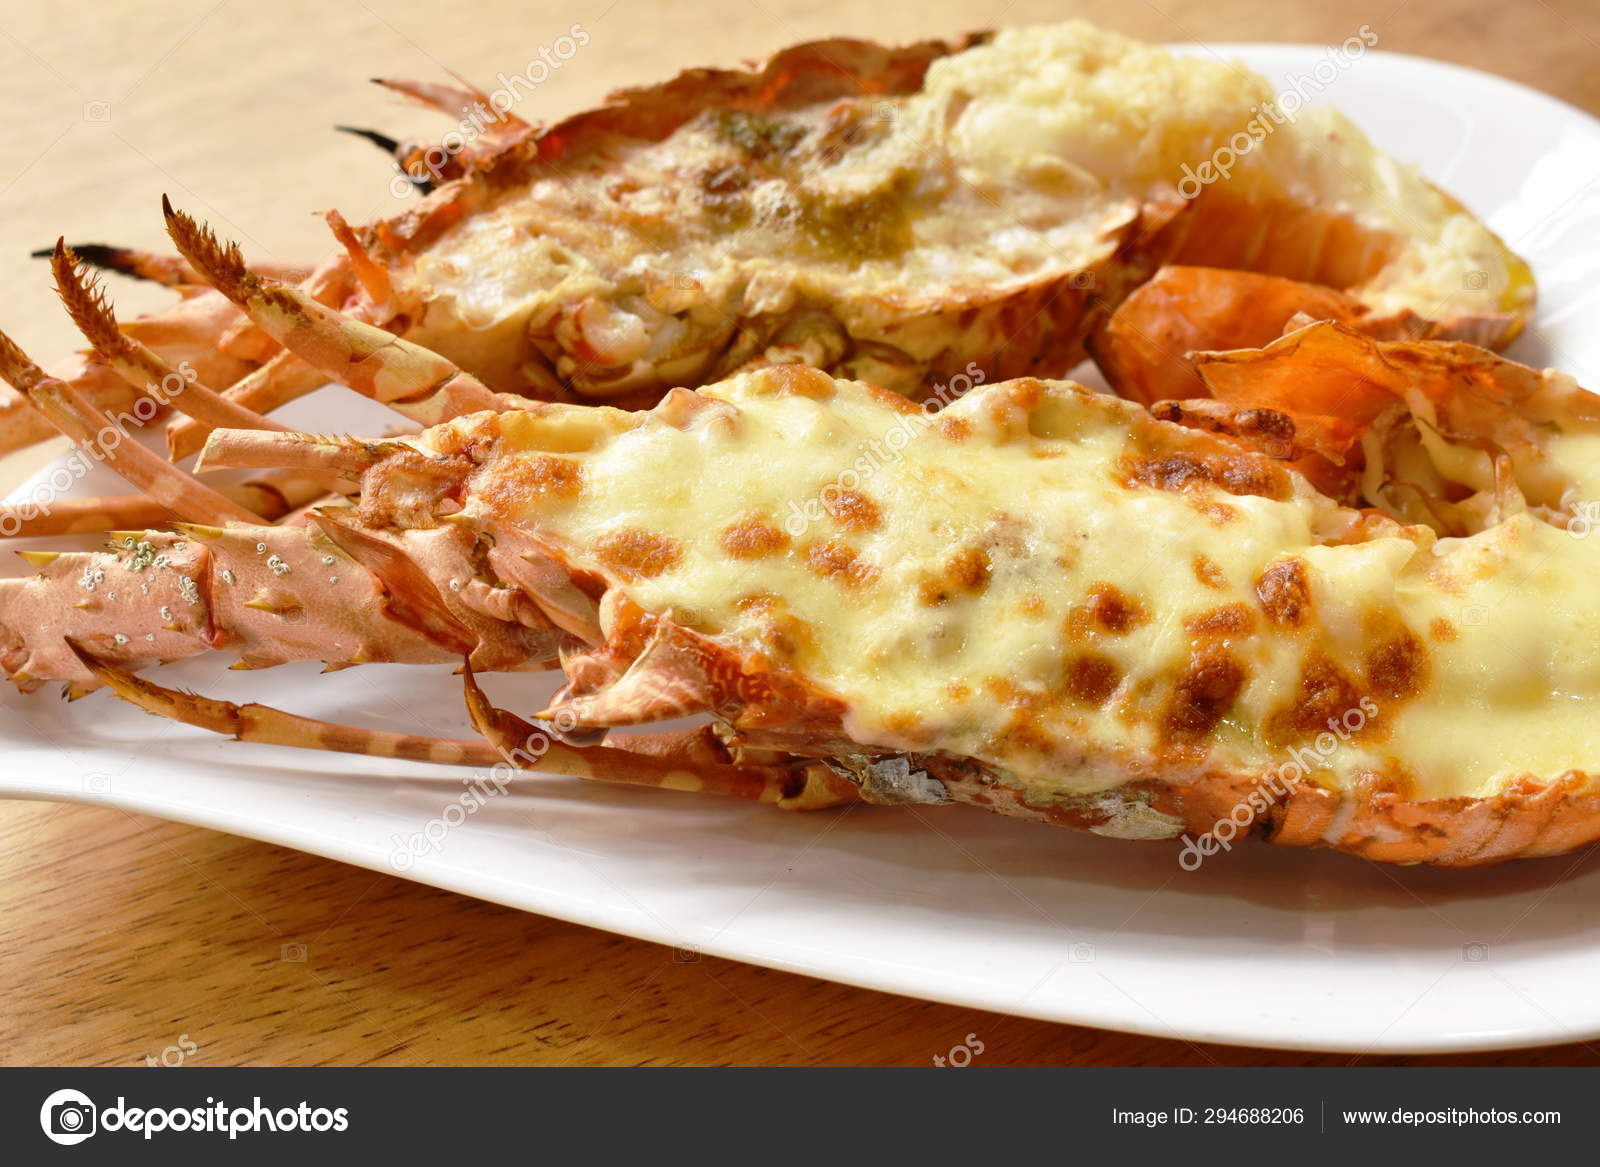 Grilled Lobster Shrimp With Cheese And Butter Garlic On Plate Stock Photo Image By C Pedphoto3pm 294688206